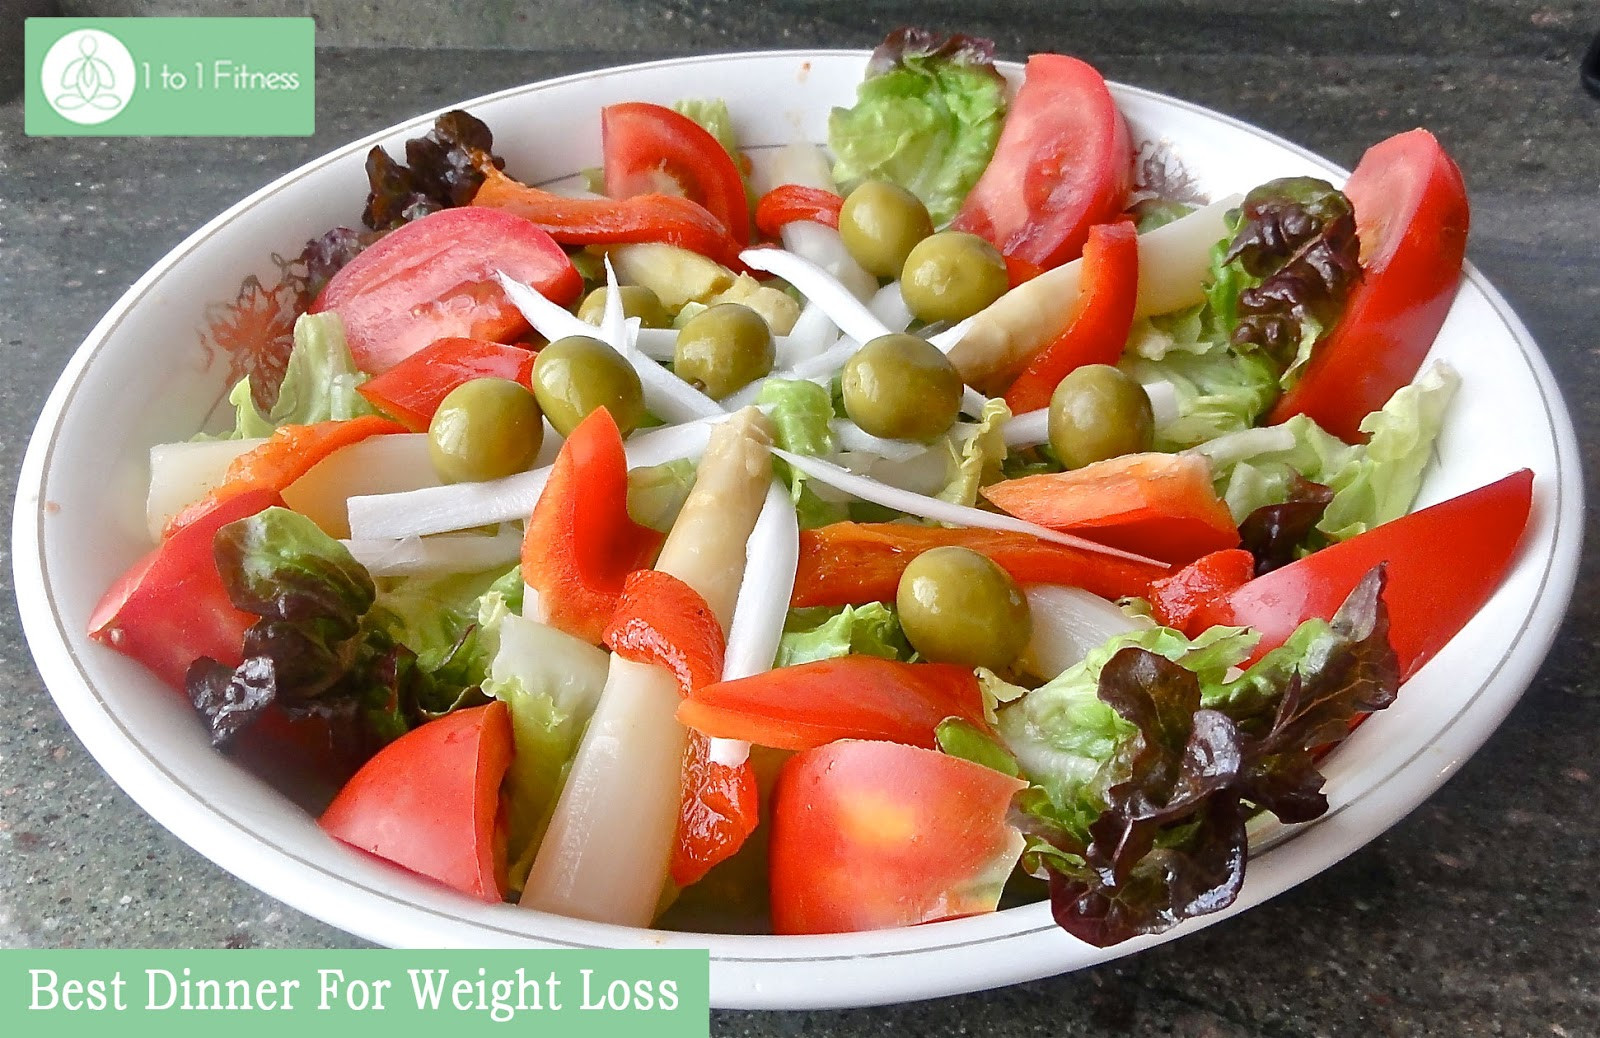 Weight Loss Salads Recipes  Which Is The Best Diet Plan For Weight Loss 1 to 1 Fitness